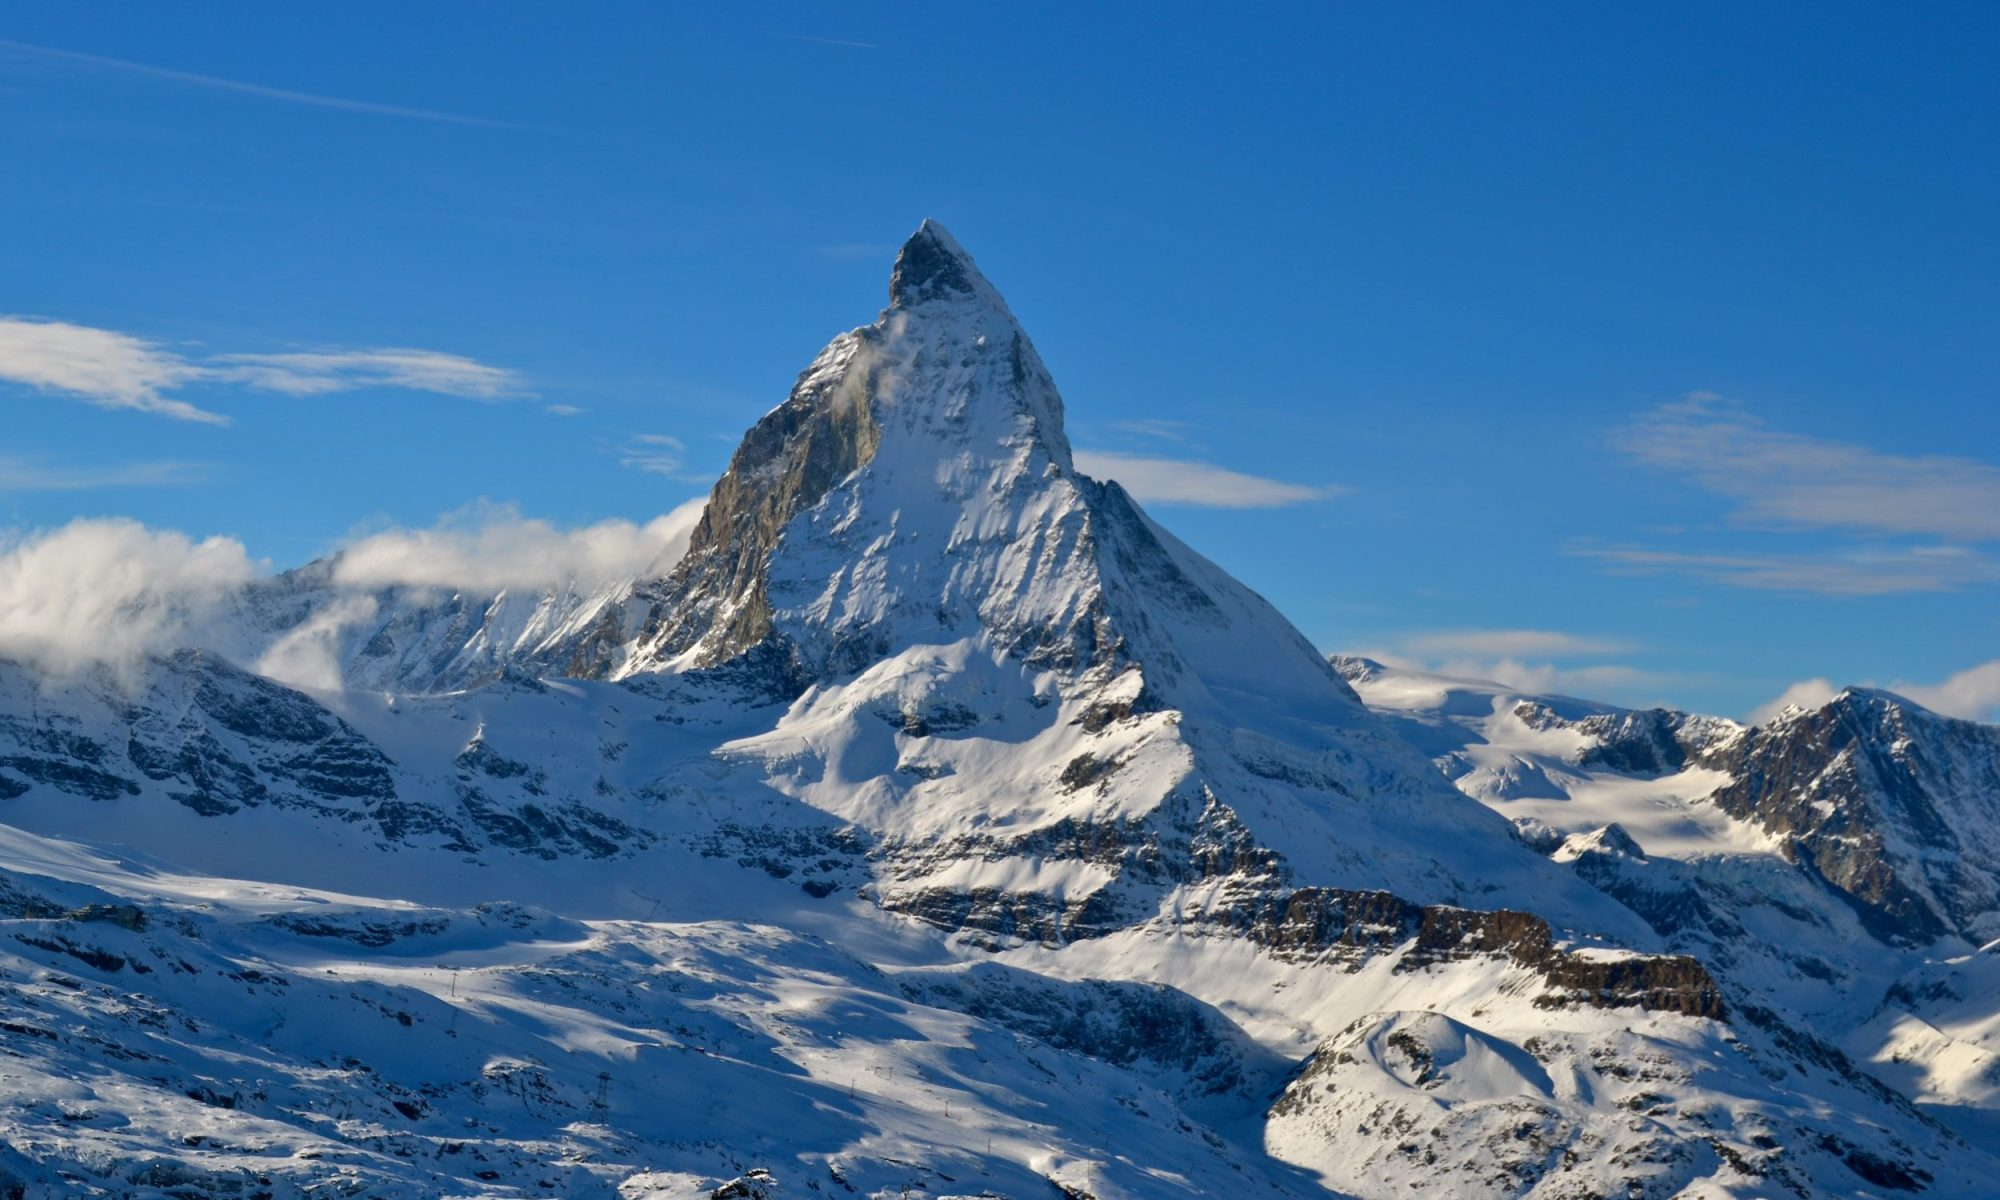 Monte Cervino/Matterhorn, where Henri Joseph Leonce Le Masne was recovered and finally identified thanks to Facebook.